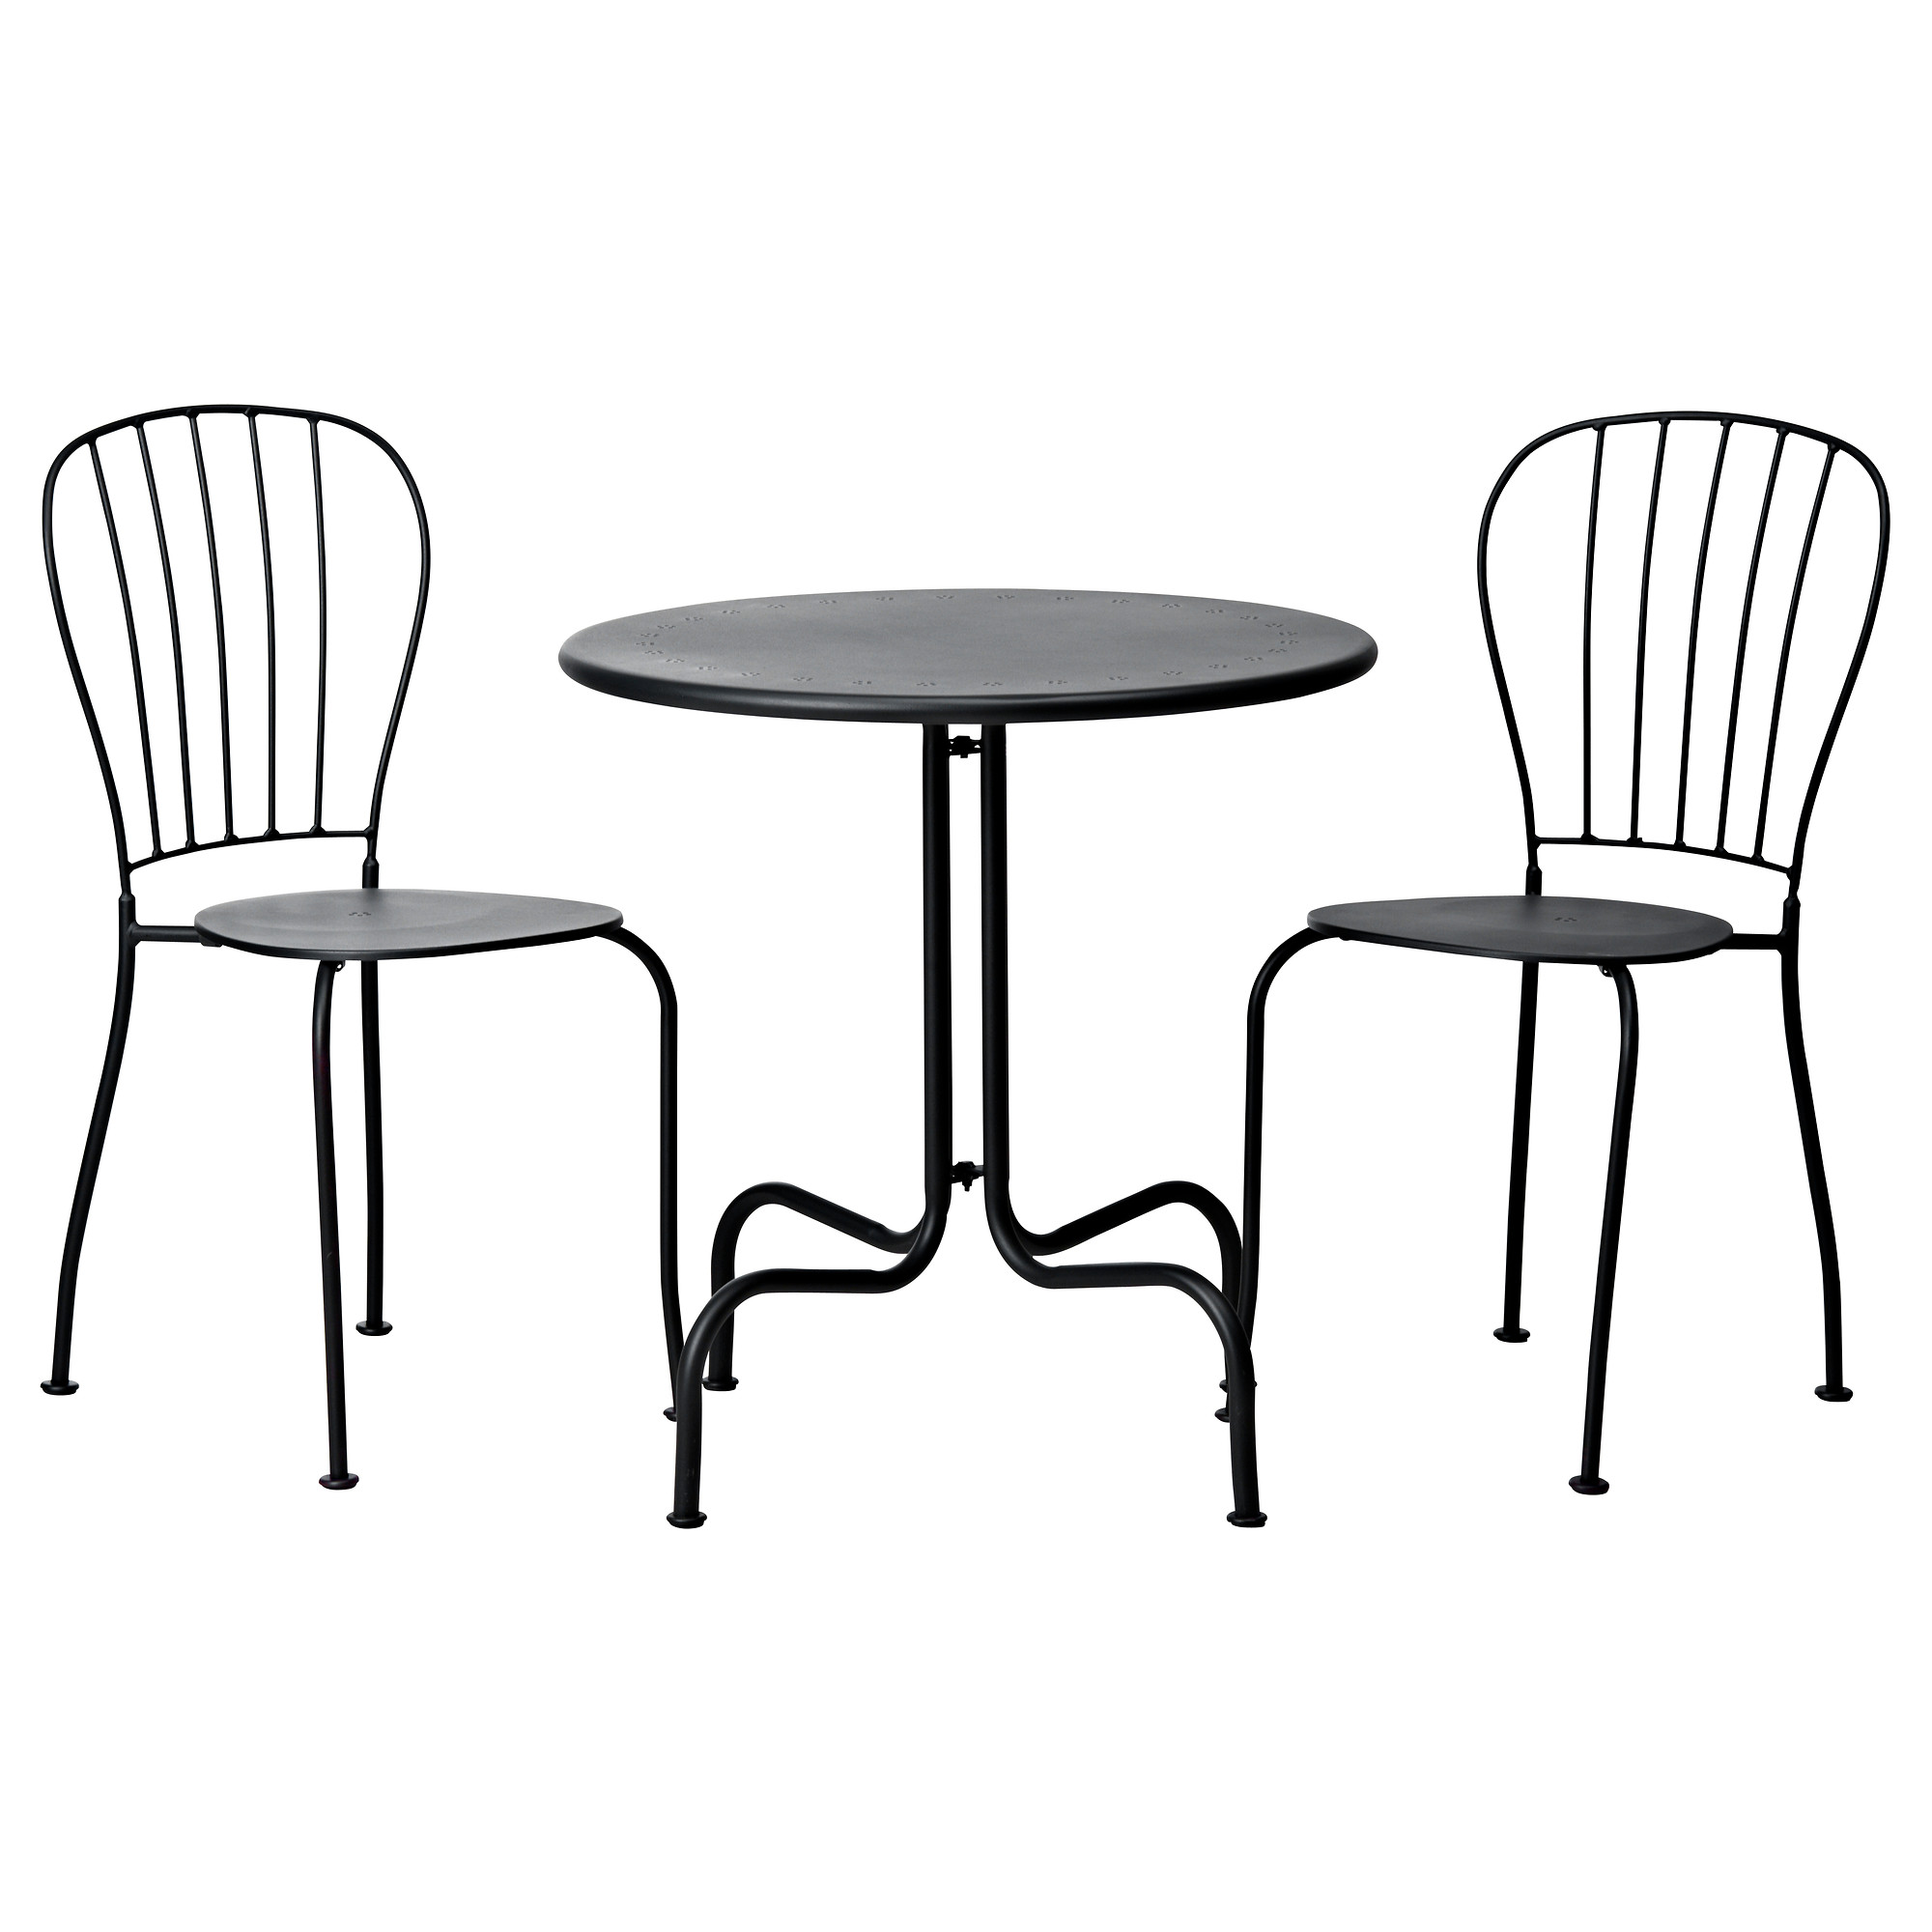 Outside Tables And Chairs Get A Nice Spot In Your Garden Or Patio By Decorating An